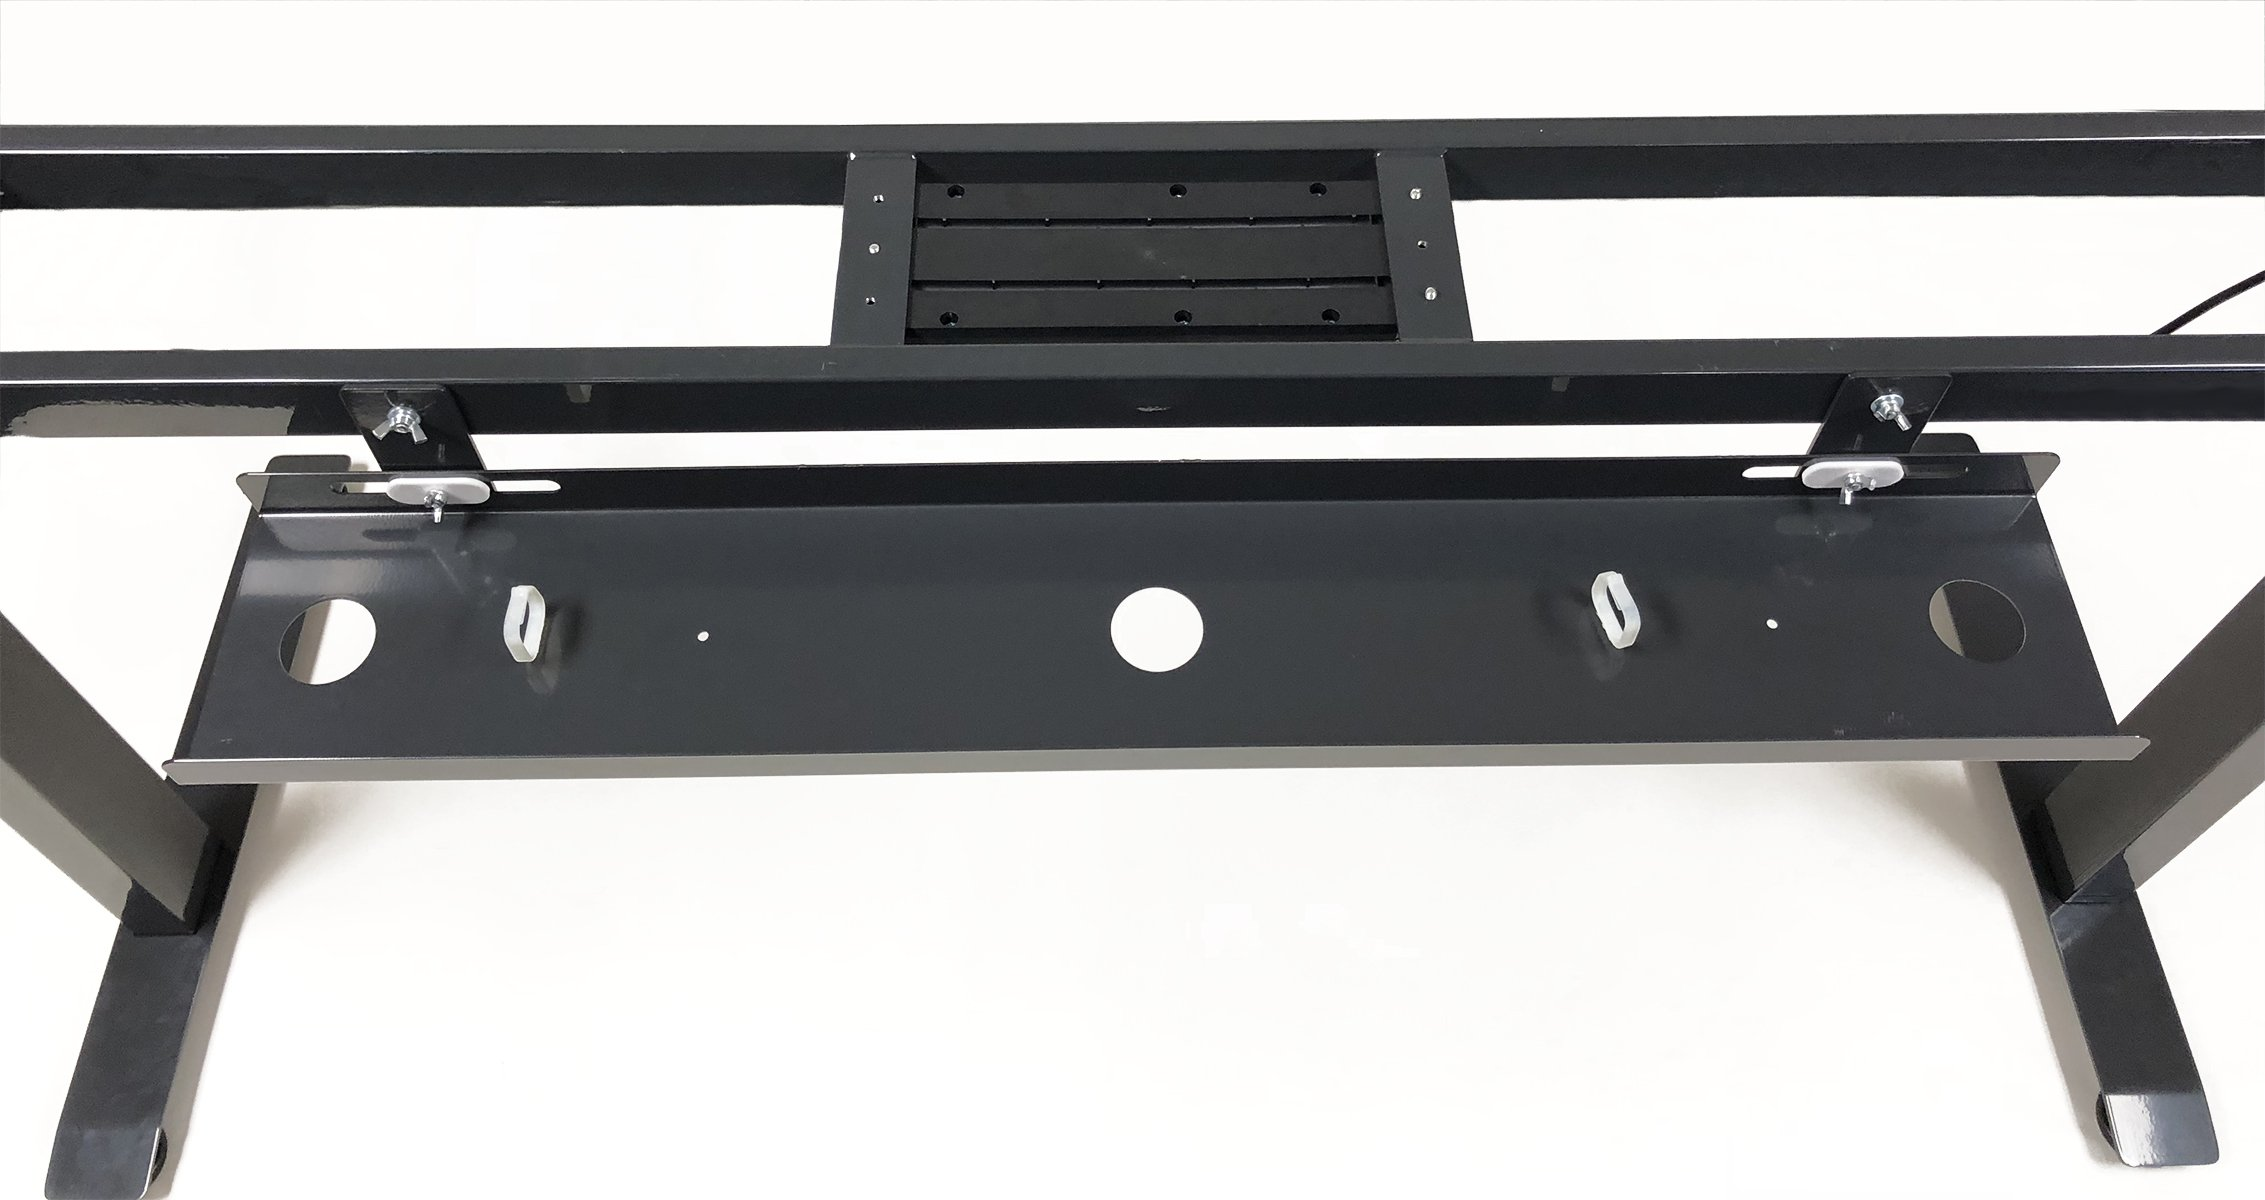 ApexDesk 36-inch Cable Management Tray - Compatible Only with The 60'' and 71'' Elite Series Standing Desk (Black) by ApexDesk